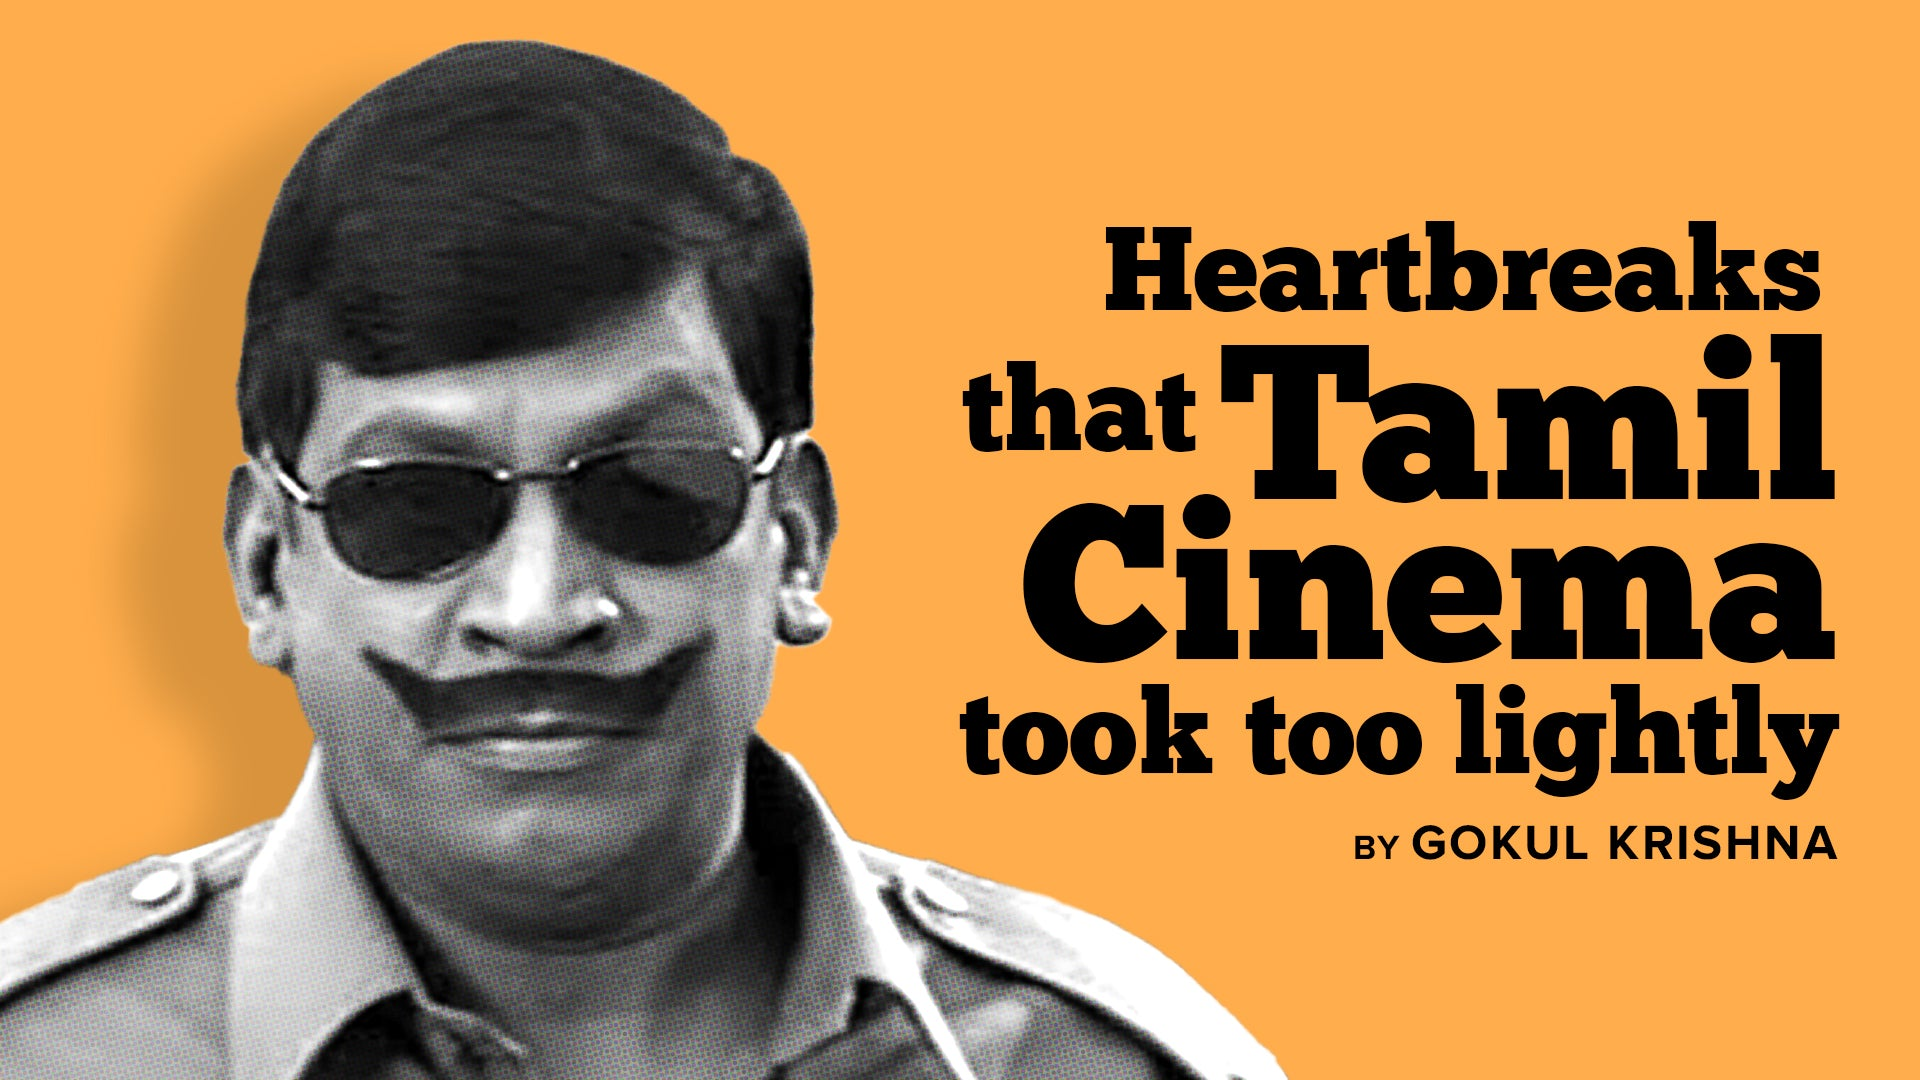 Heartbreaks that Tamil Cinema took too lightly!